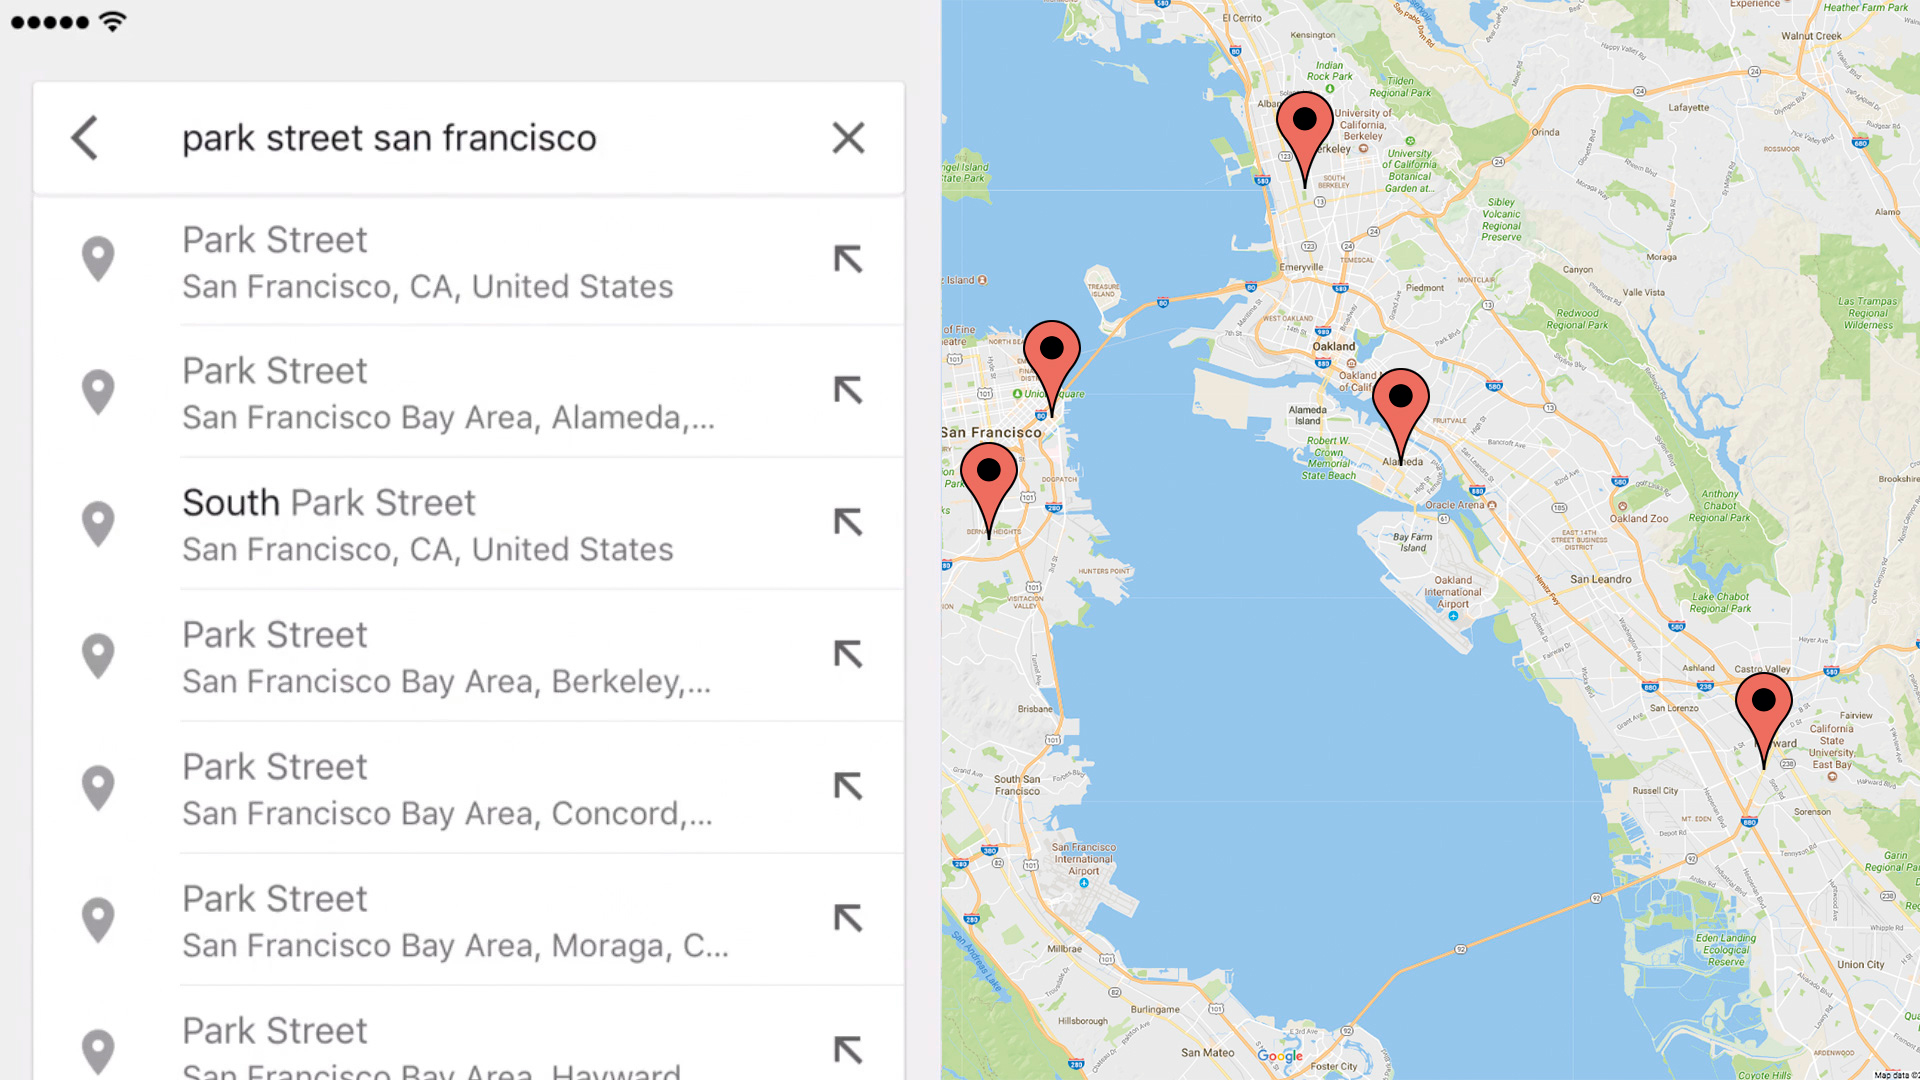 Every Airbnb is now easy to find with a 3 word address